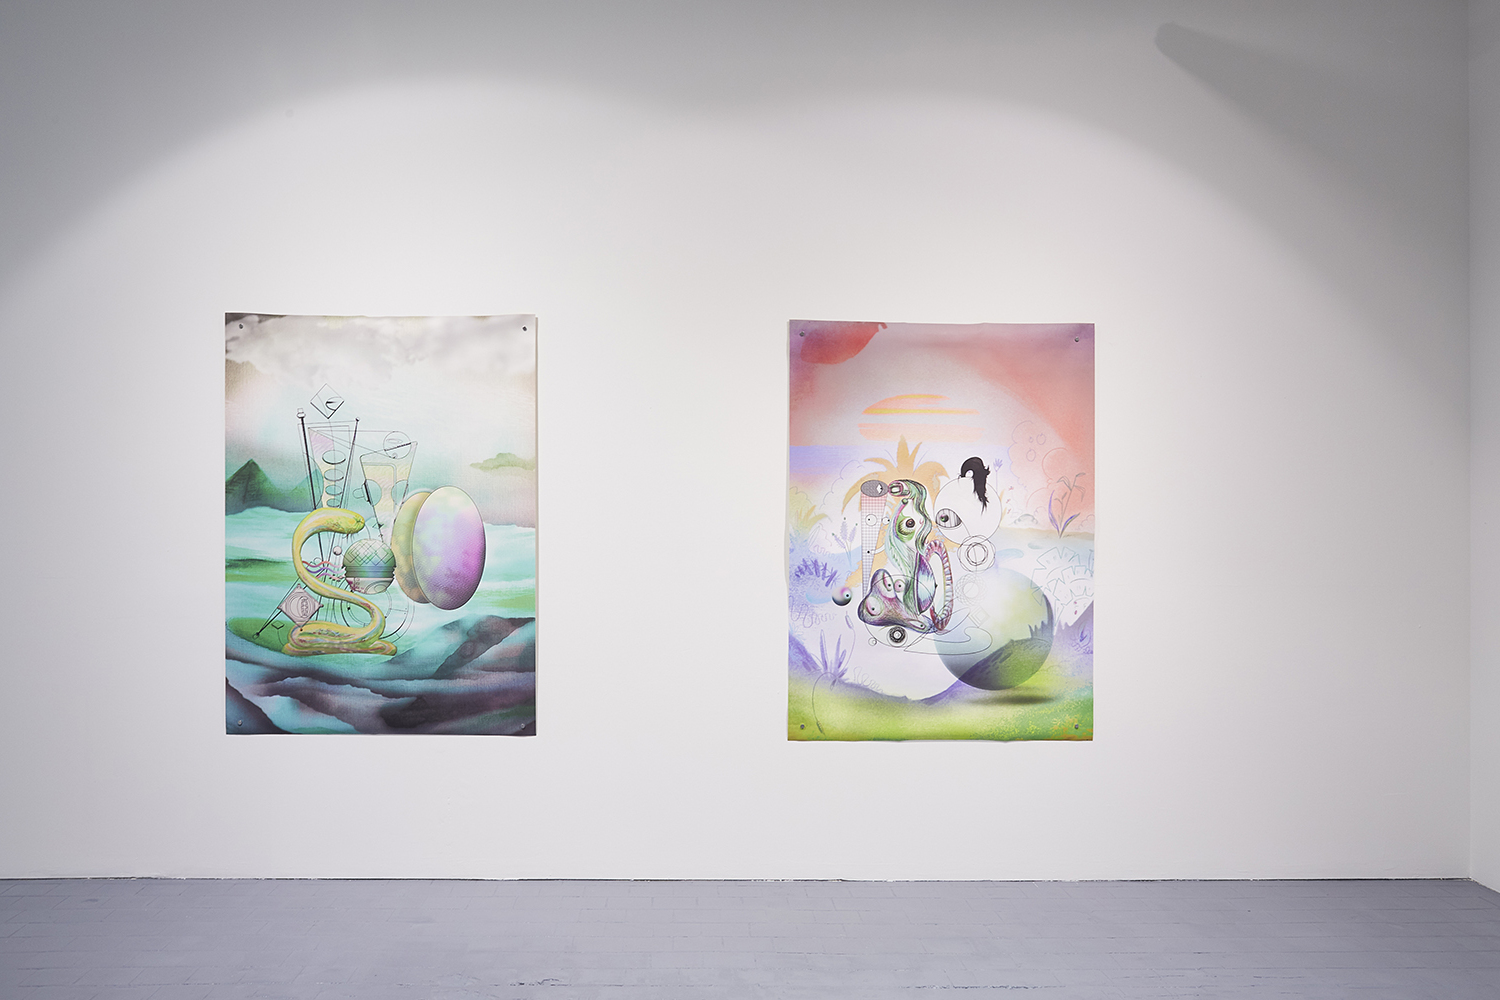 Installation view of the exhibition, 'Extra-Planetary Commitment', lítost gallery